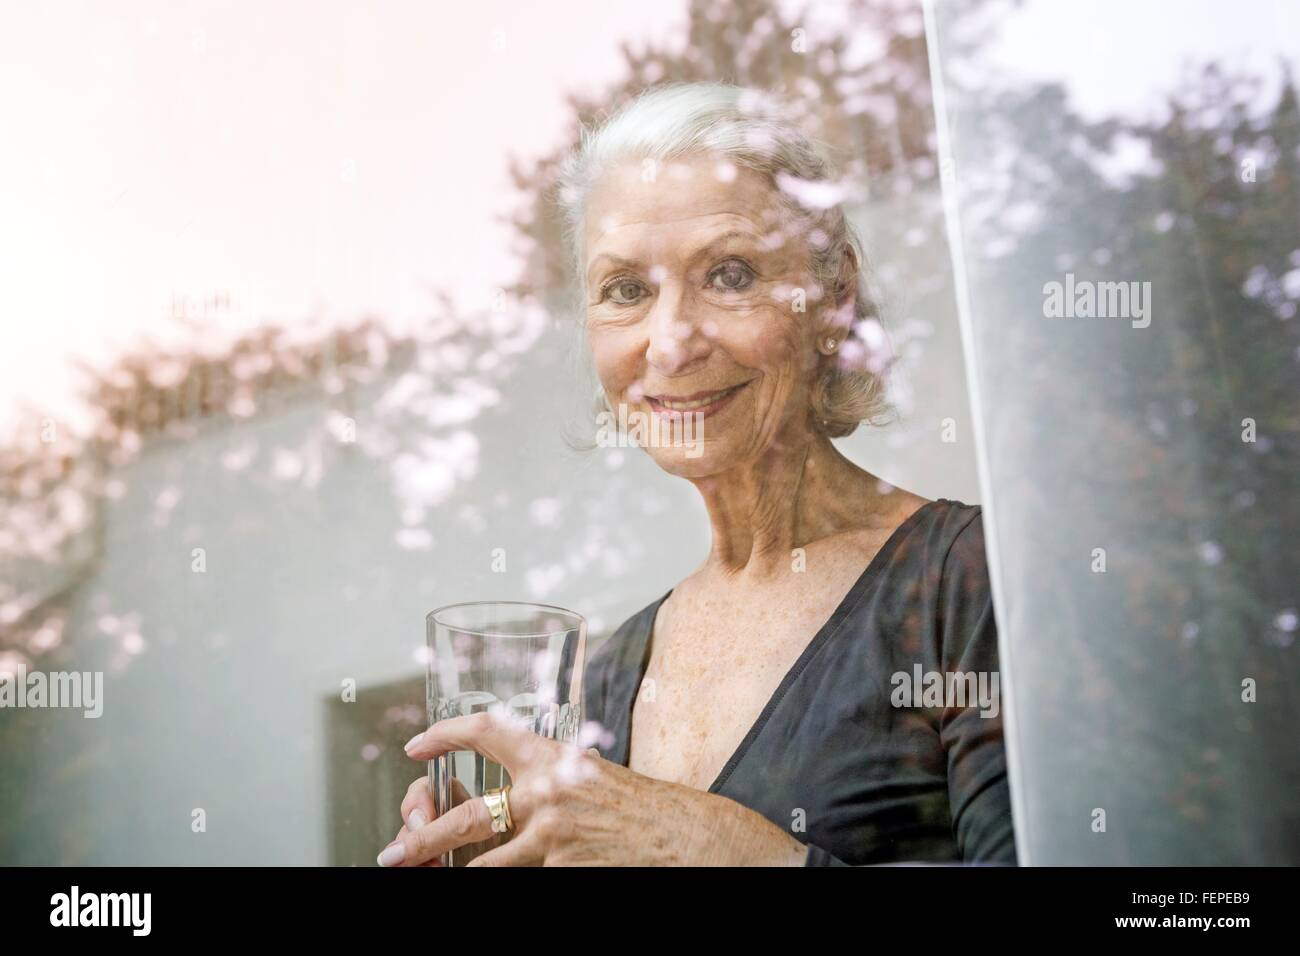 View through window of senior woman holding tumbler looking at camera smiling - Stock Image